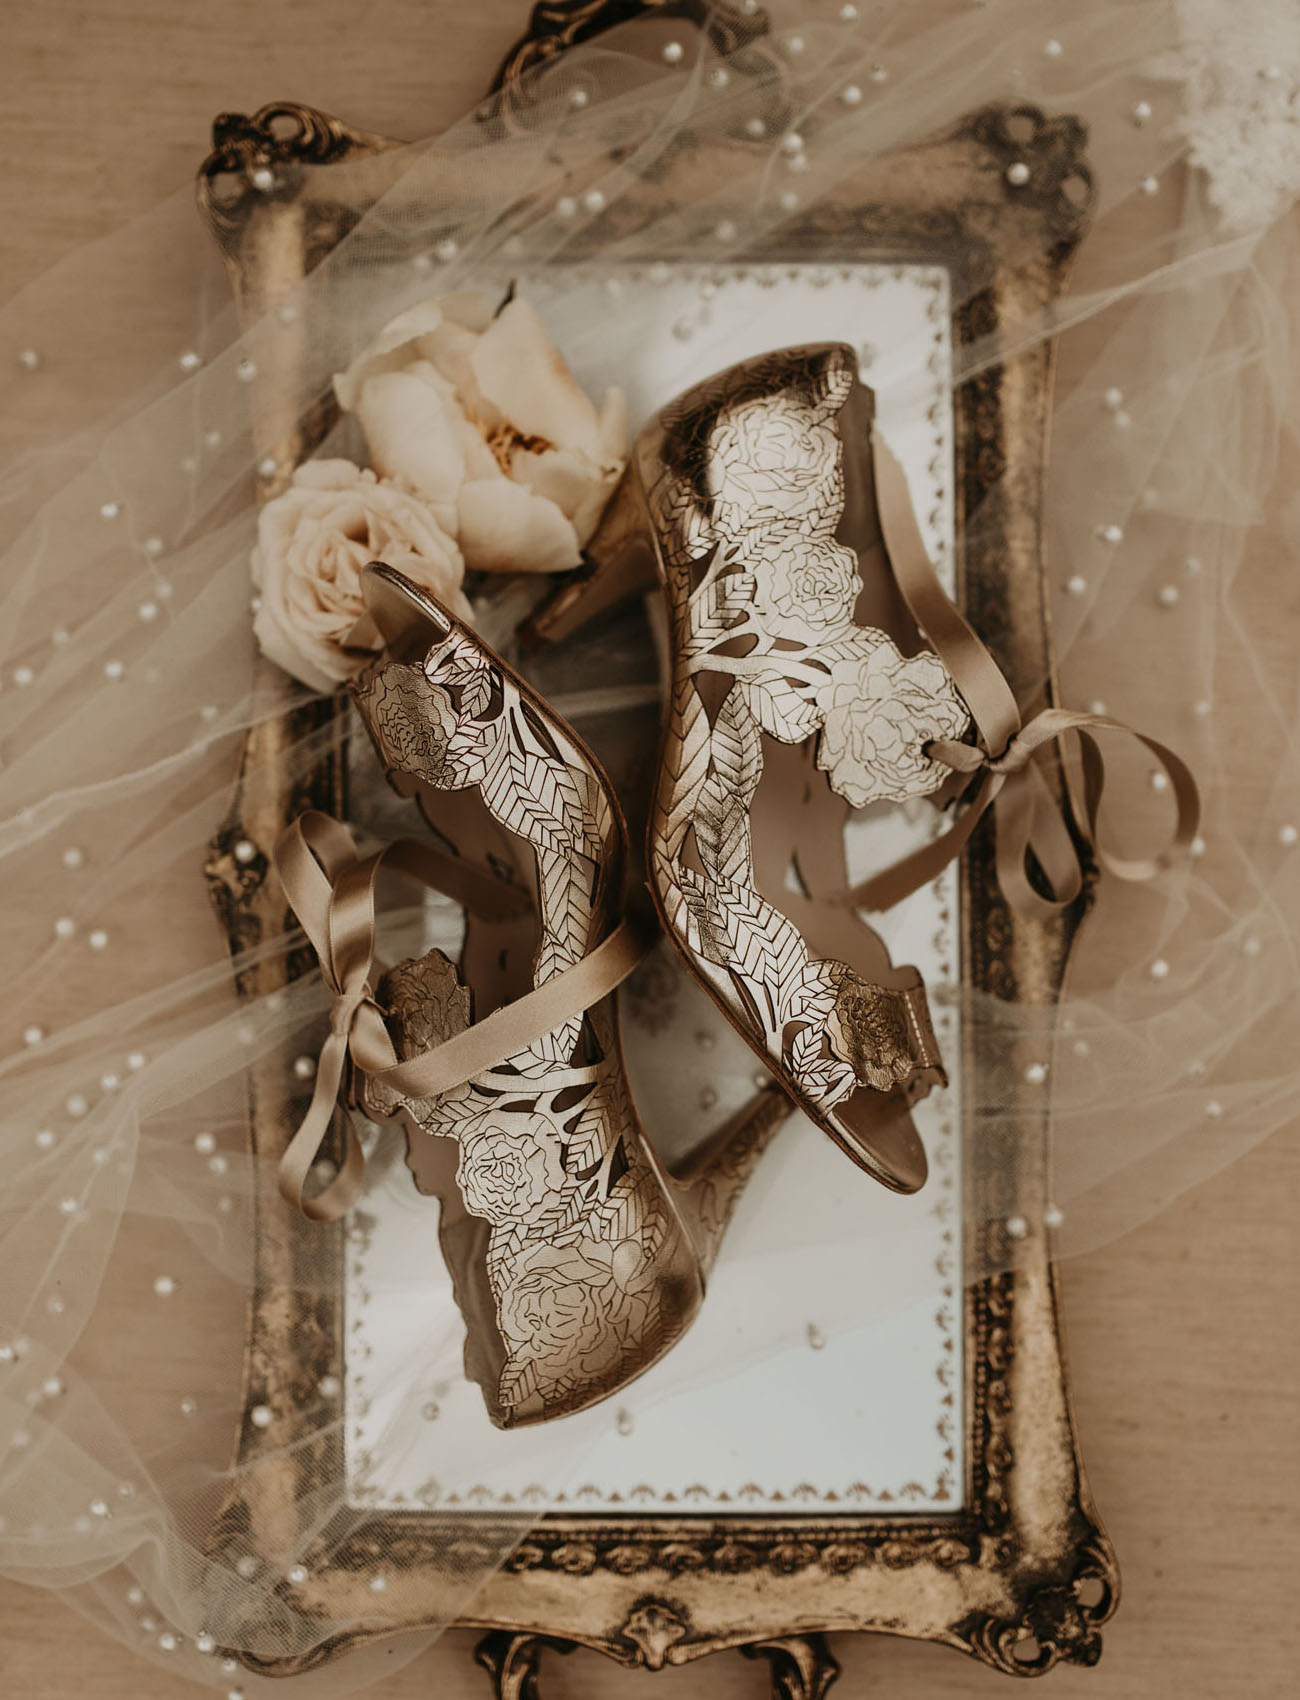 She was wearing amazing gold floral heels with bows to comeplete her sophisticated look